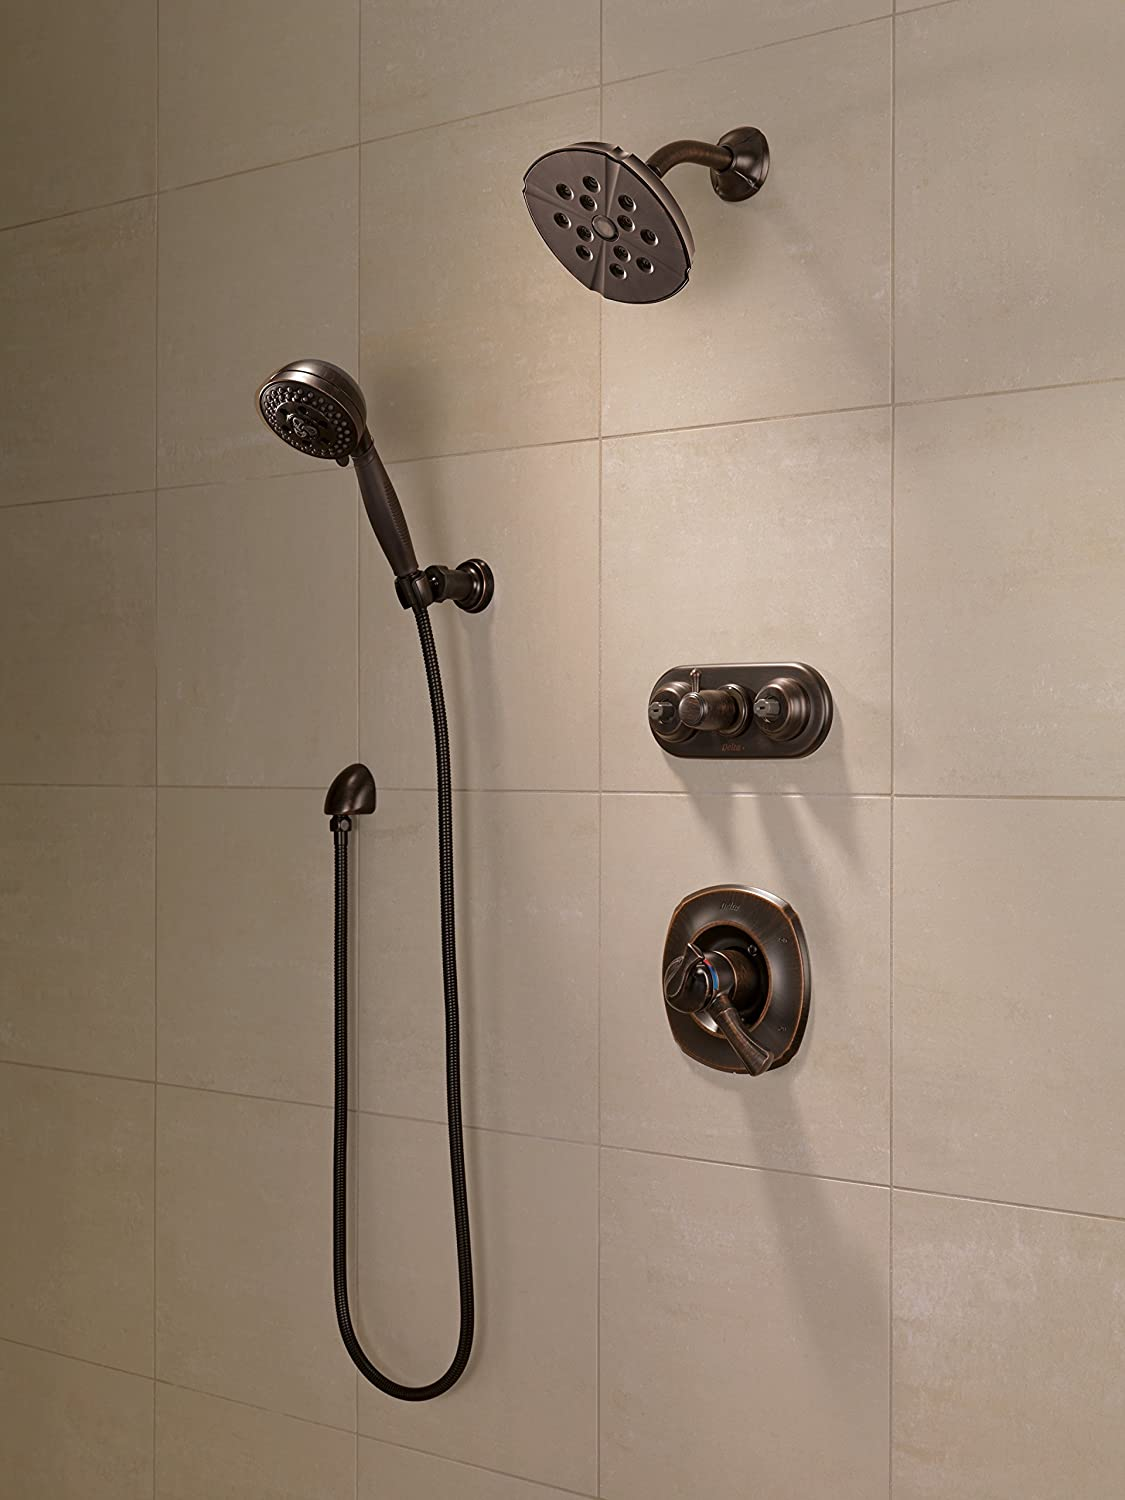 Delta T17292 RB Addison Monitor 17 Series Shower Trim, Venetian Bronze    Plumbing Equipment   Amazon.com